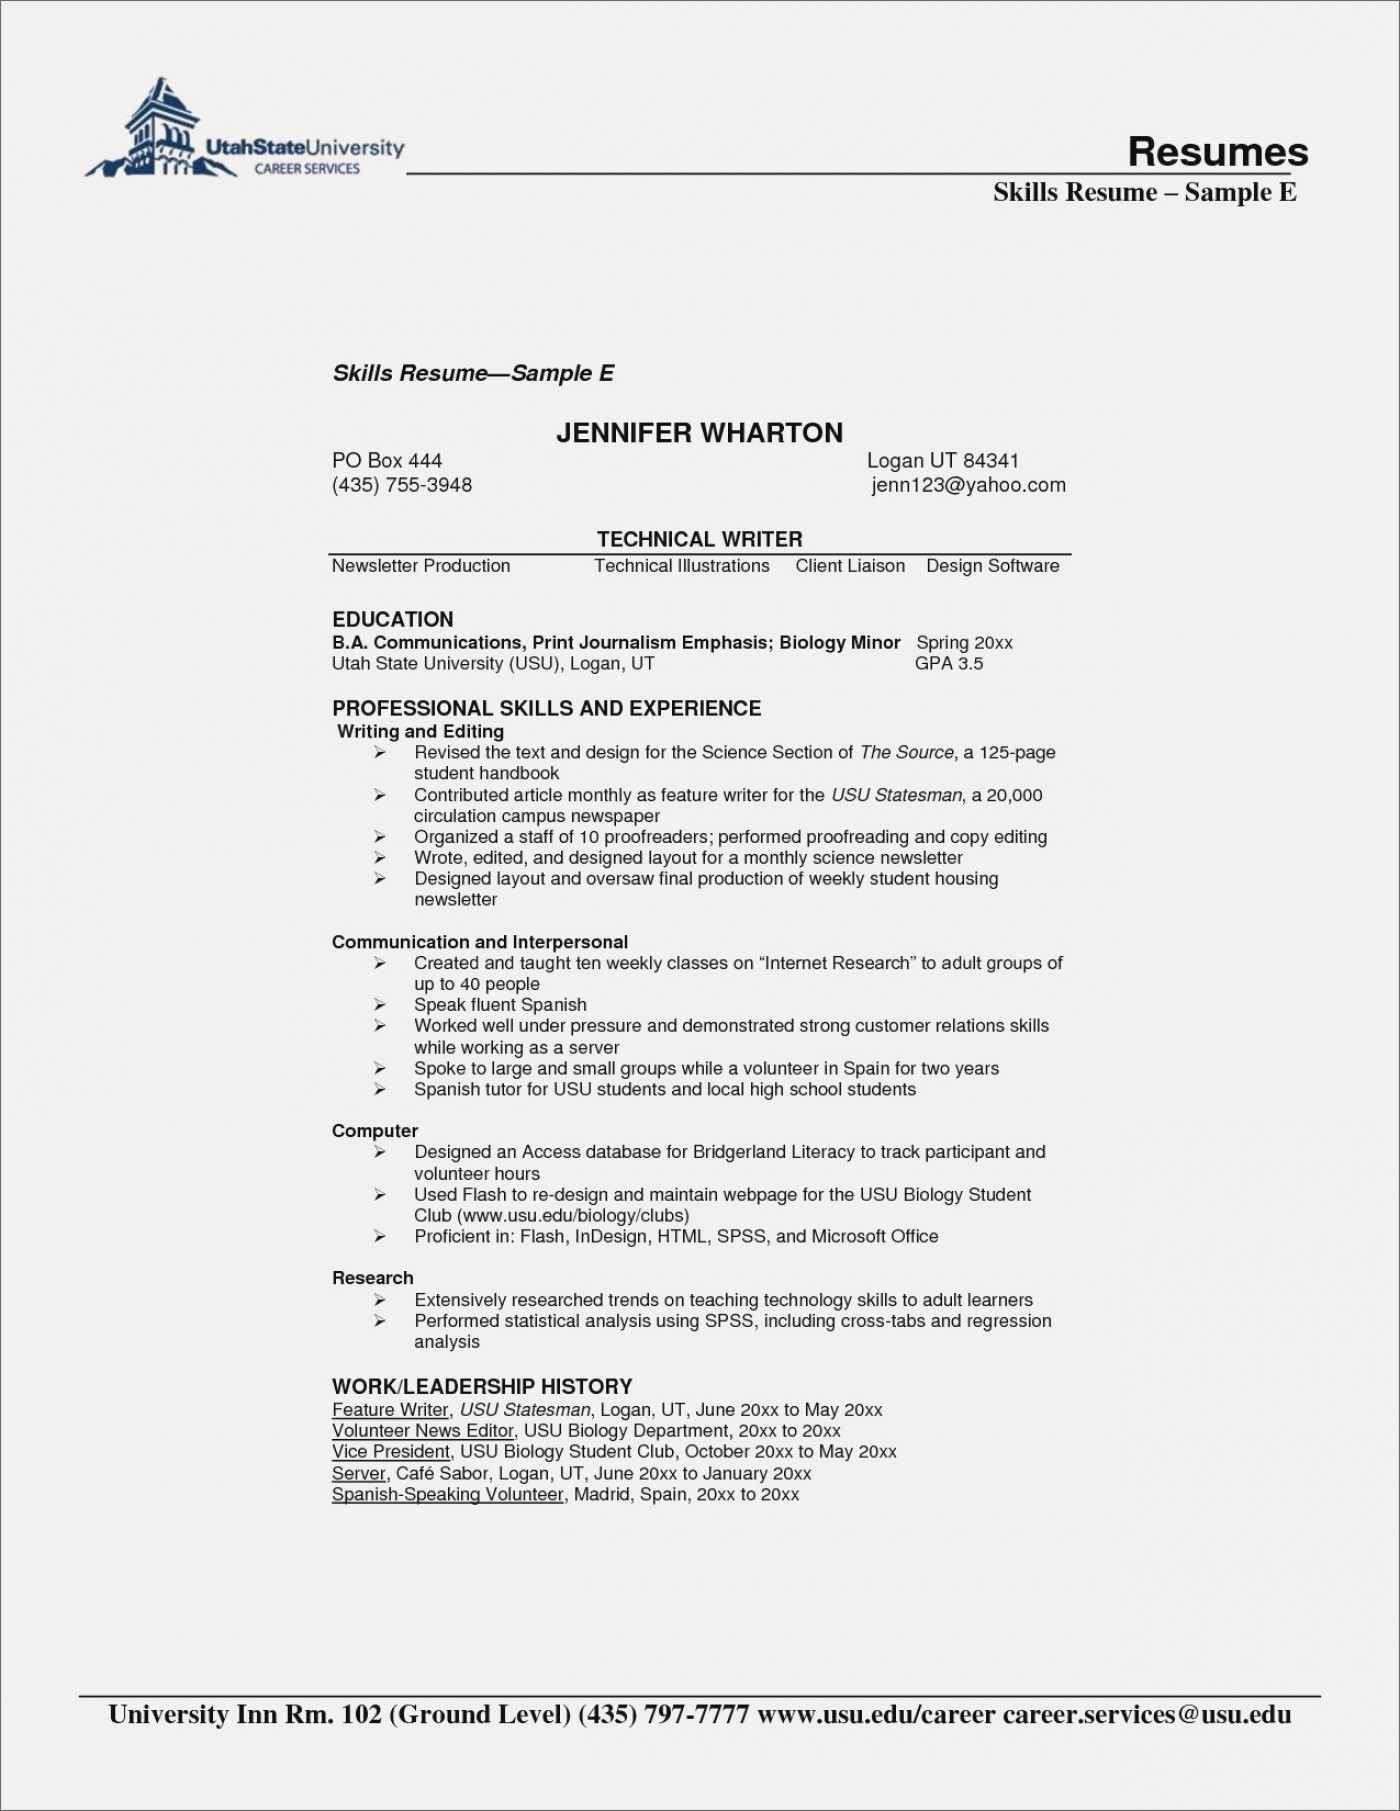 014 Biology Research Paper Lovely Resume Skills Section Example Save Puter Unique Of Remarkable Sample Format 1400